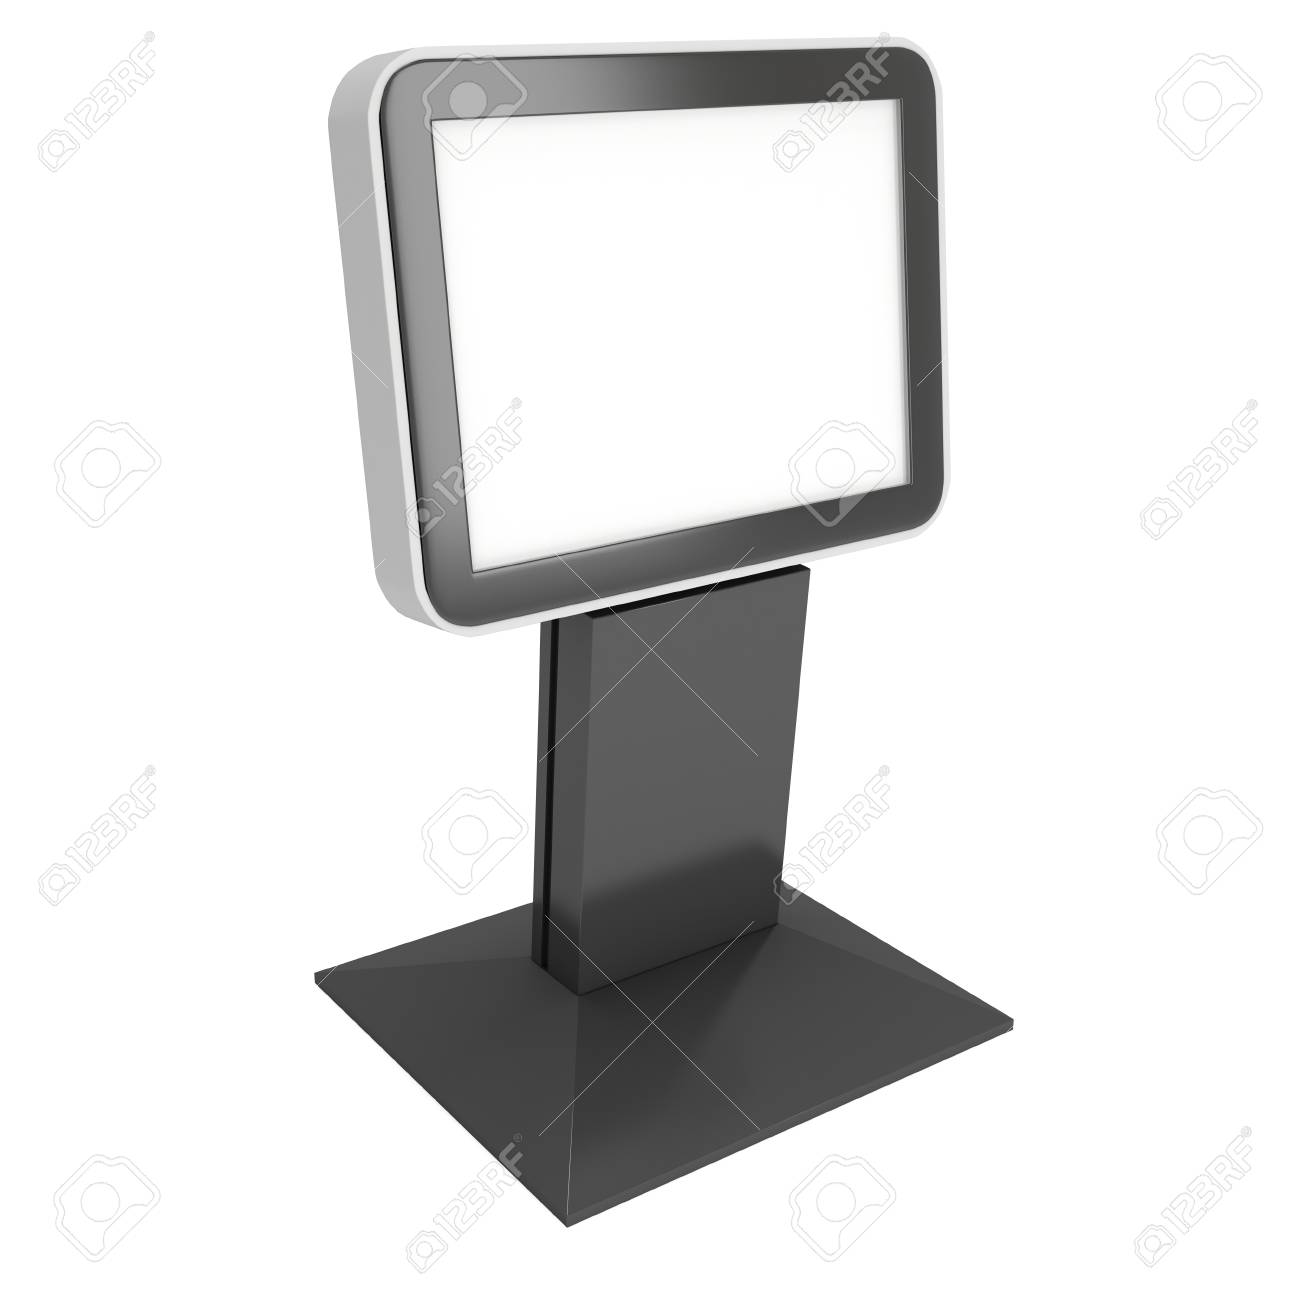 Lcd Screen Stand Blank Trade Show Booth 3d Render Of Lcd Tv